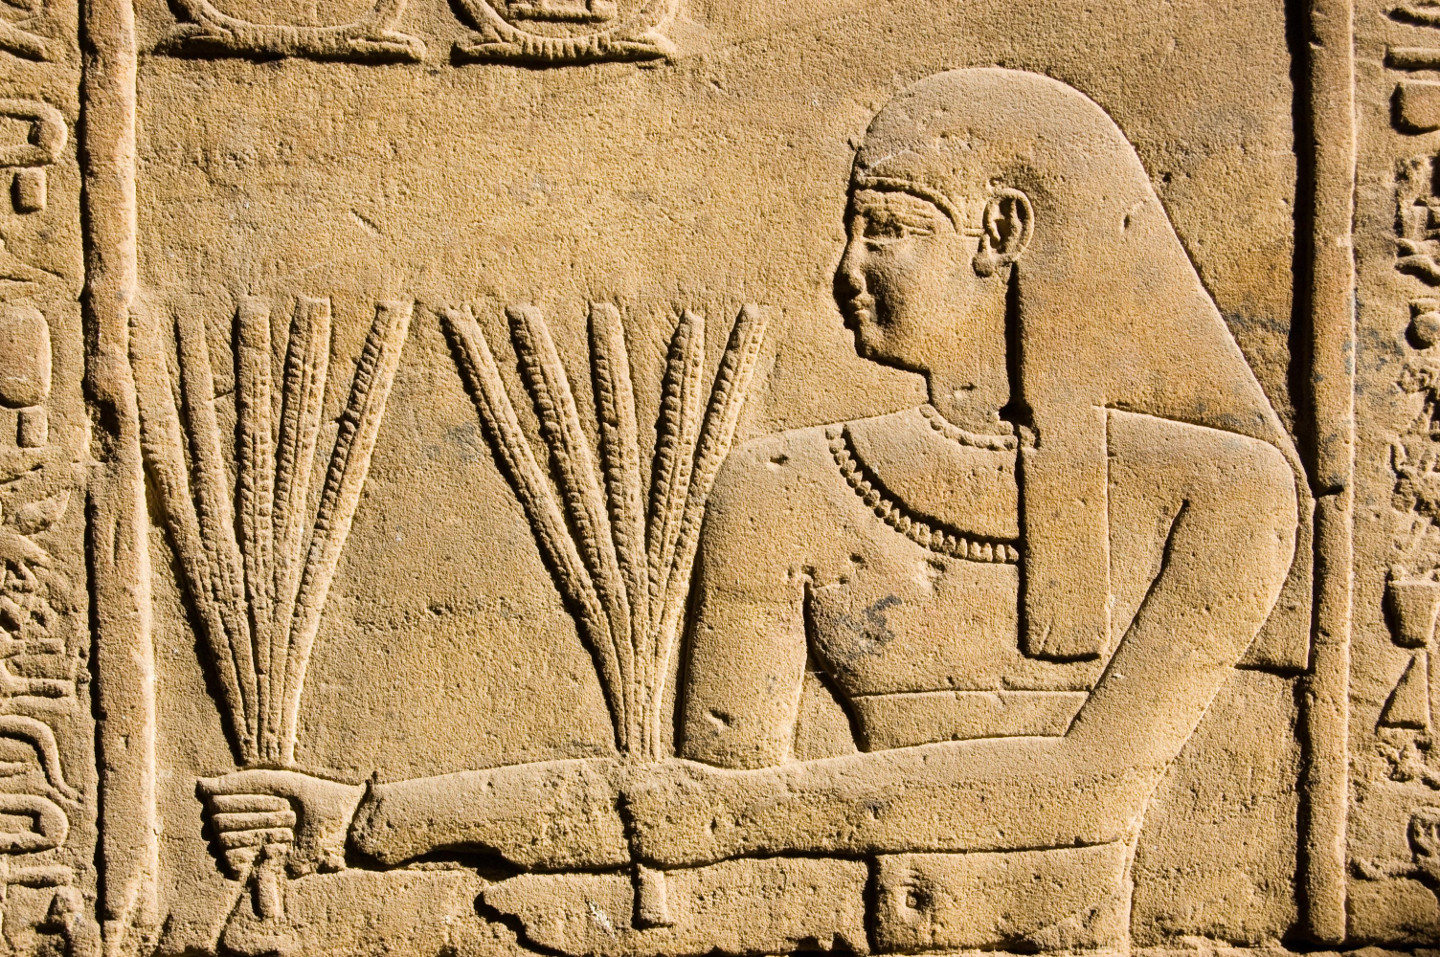 Ancient Egyptian stone carving of a priest carrying stalks of wheat.  Temple of Horus, Edfu, Egypt.